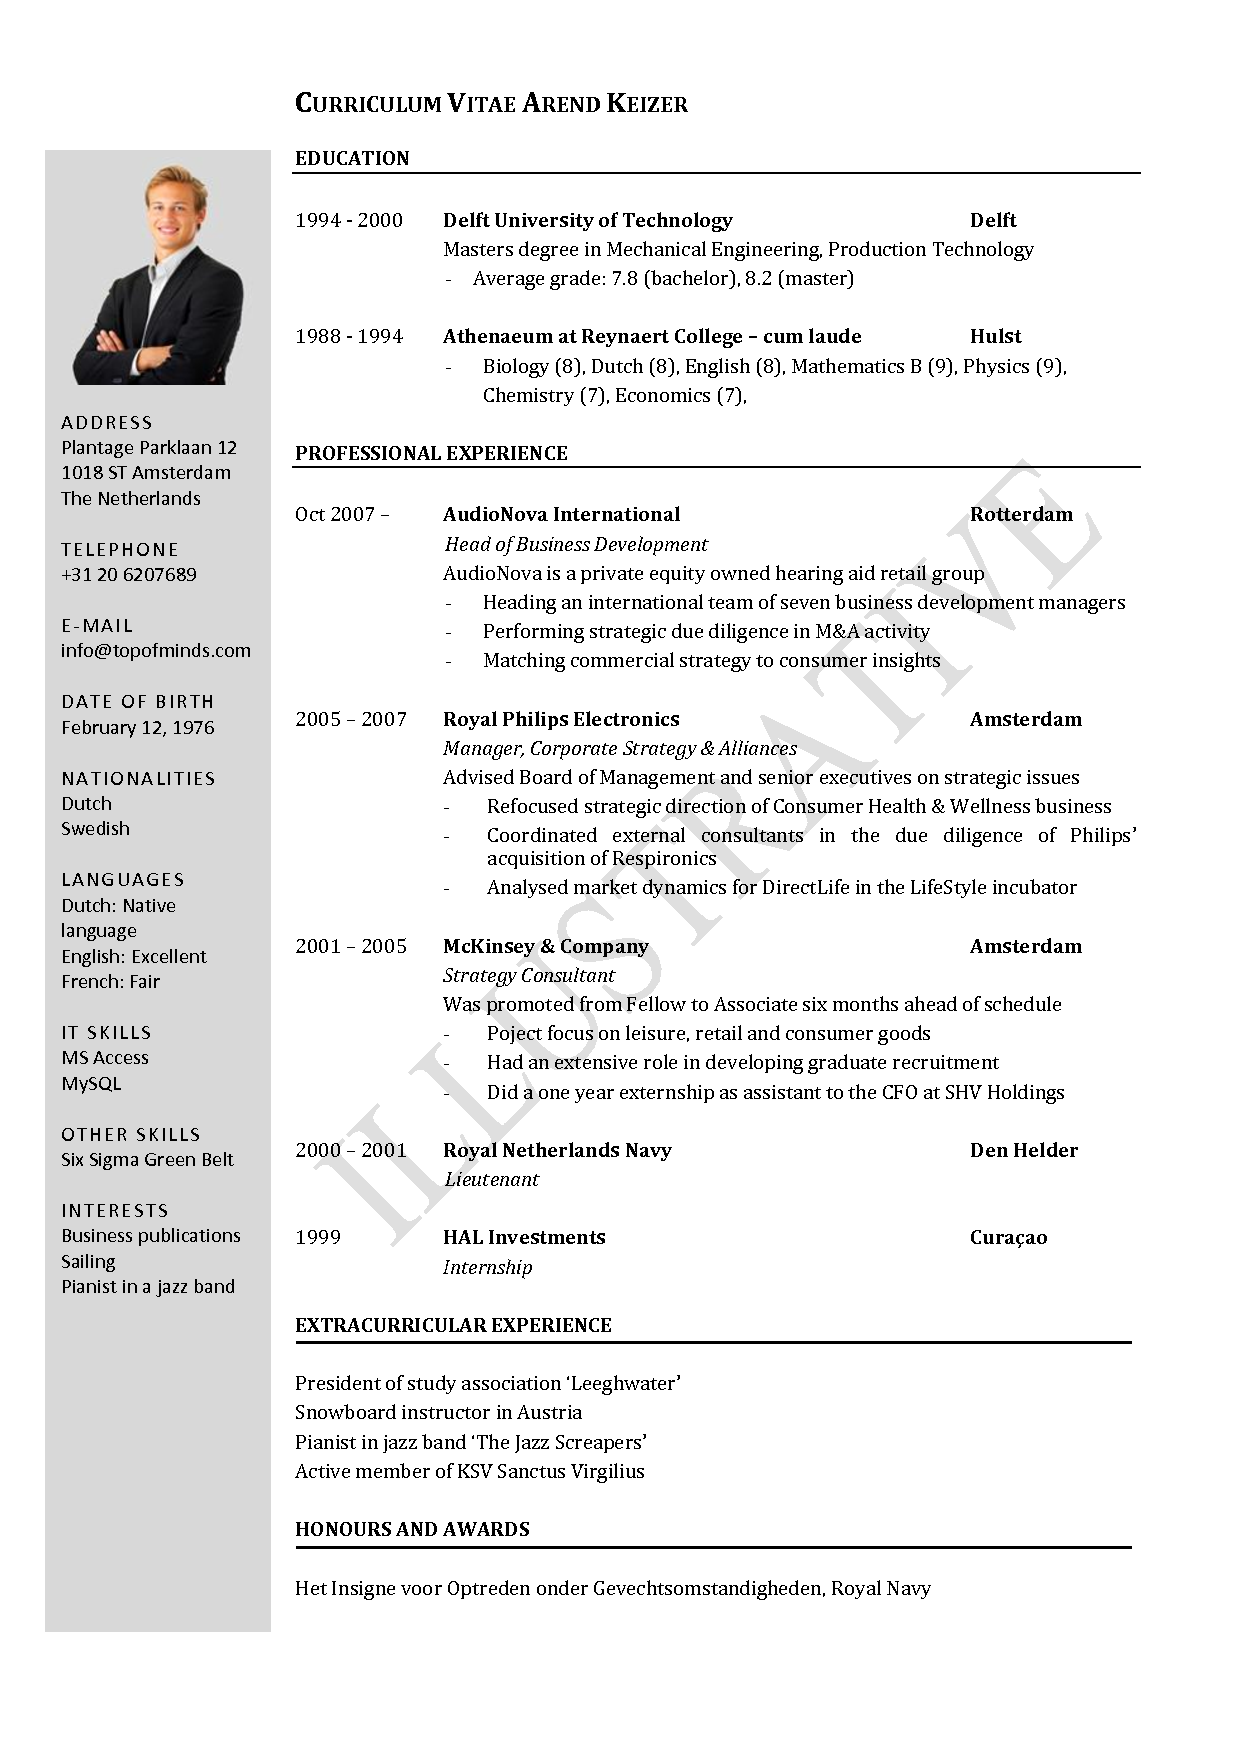 Resume Format Design Cv Template University Student Google Search Cv